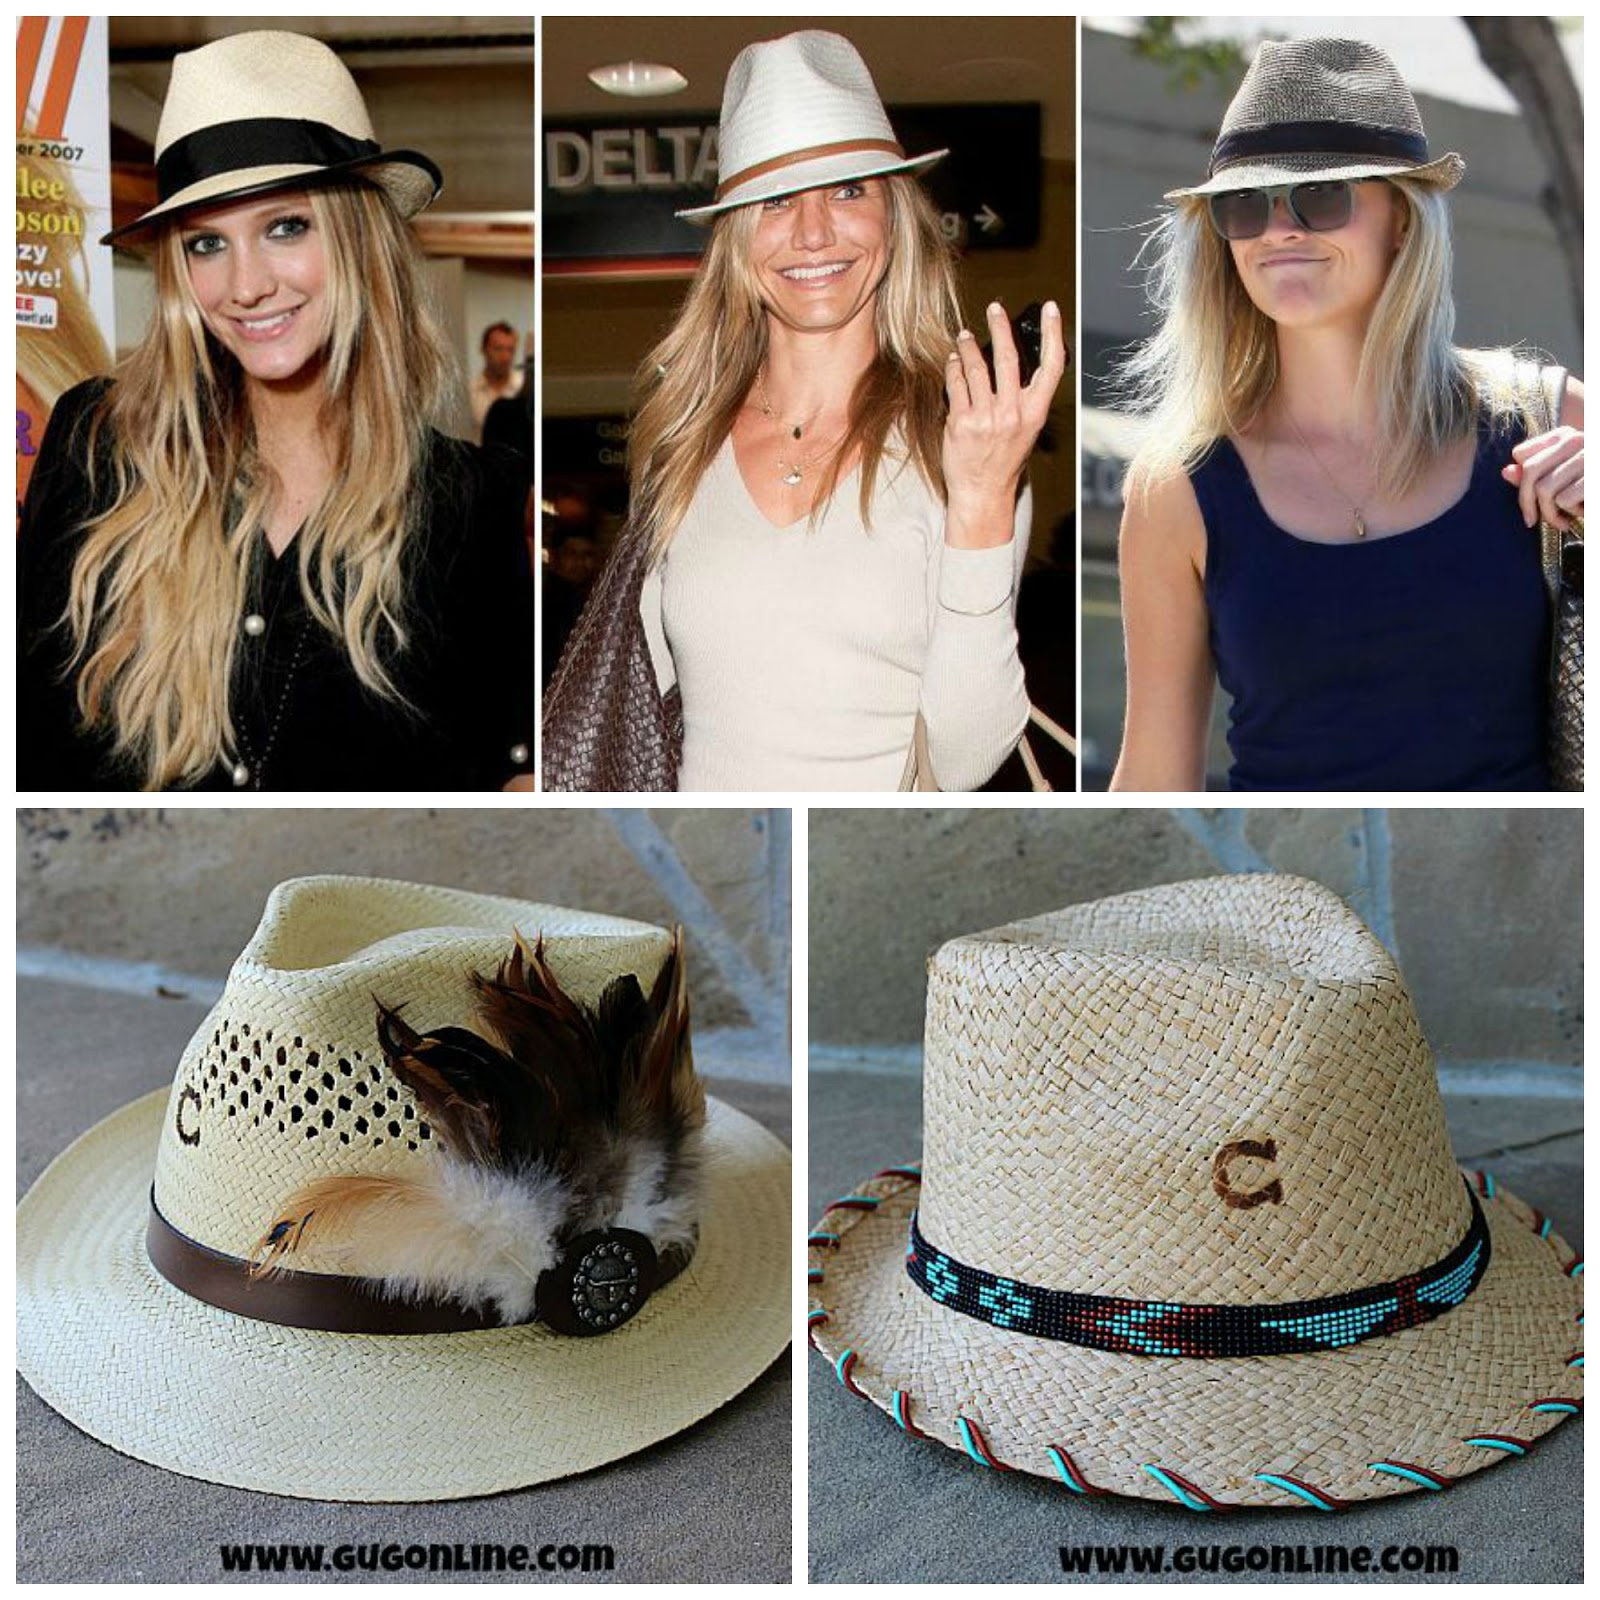 56fc0b1388a9 On the bottom, are Giddy Up Glamour's stylish fedoras. These particular  hats are more of a summer look hat, but Giddy Up also has fedoras suitable  for your ...